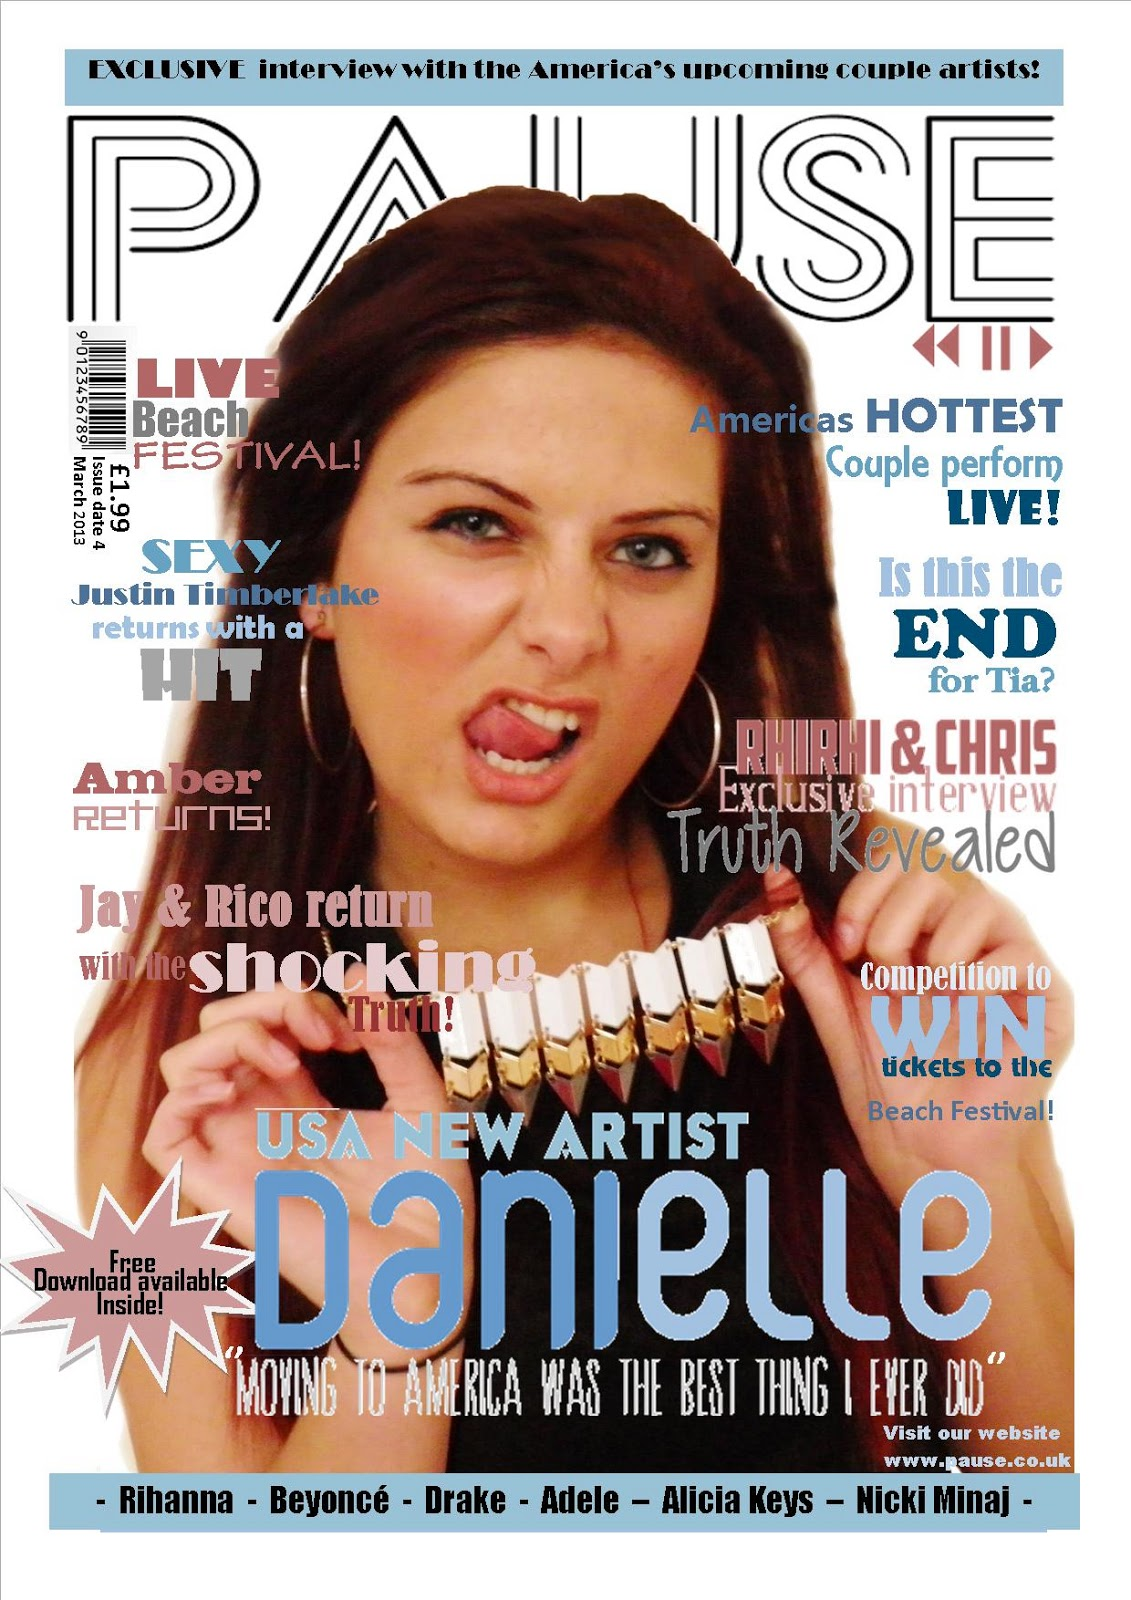 media studies coursework magazine cover Posts about contents page photoshoot planning (general) for my school magazine and fit write-ups relevant to the coursework side of my as media studies.